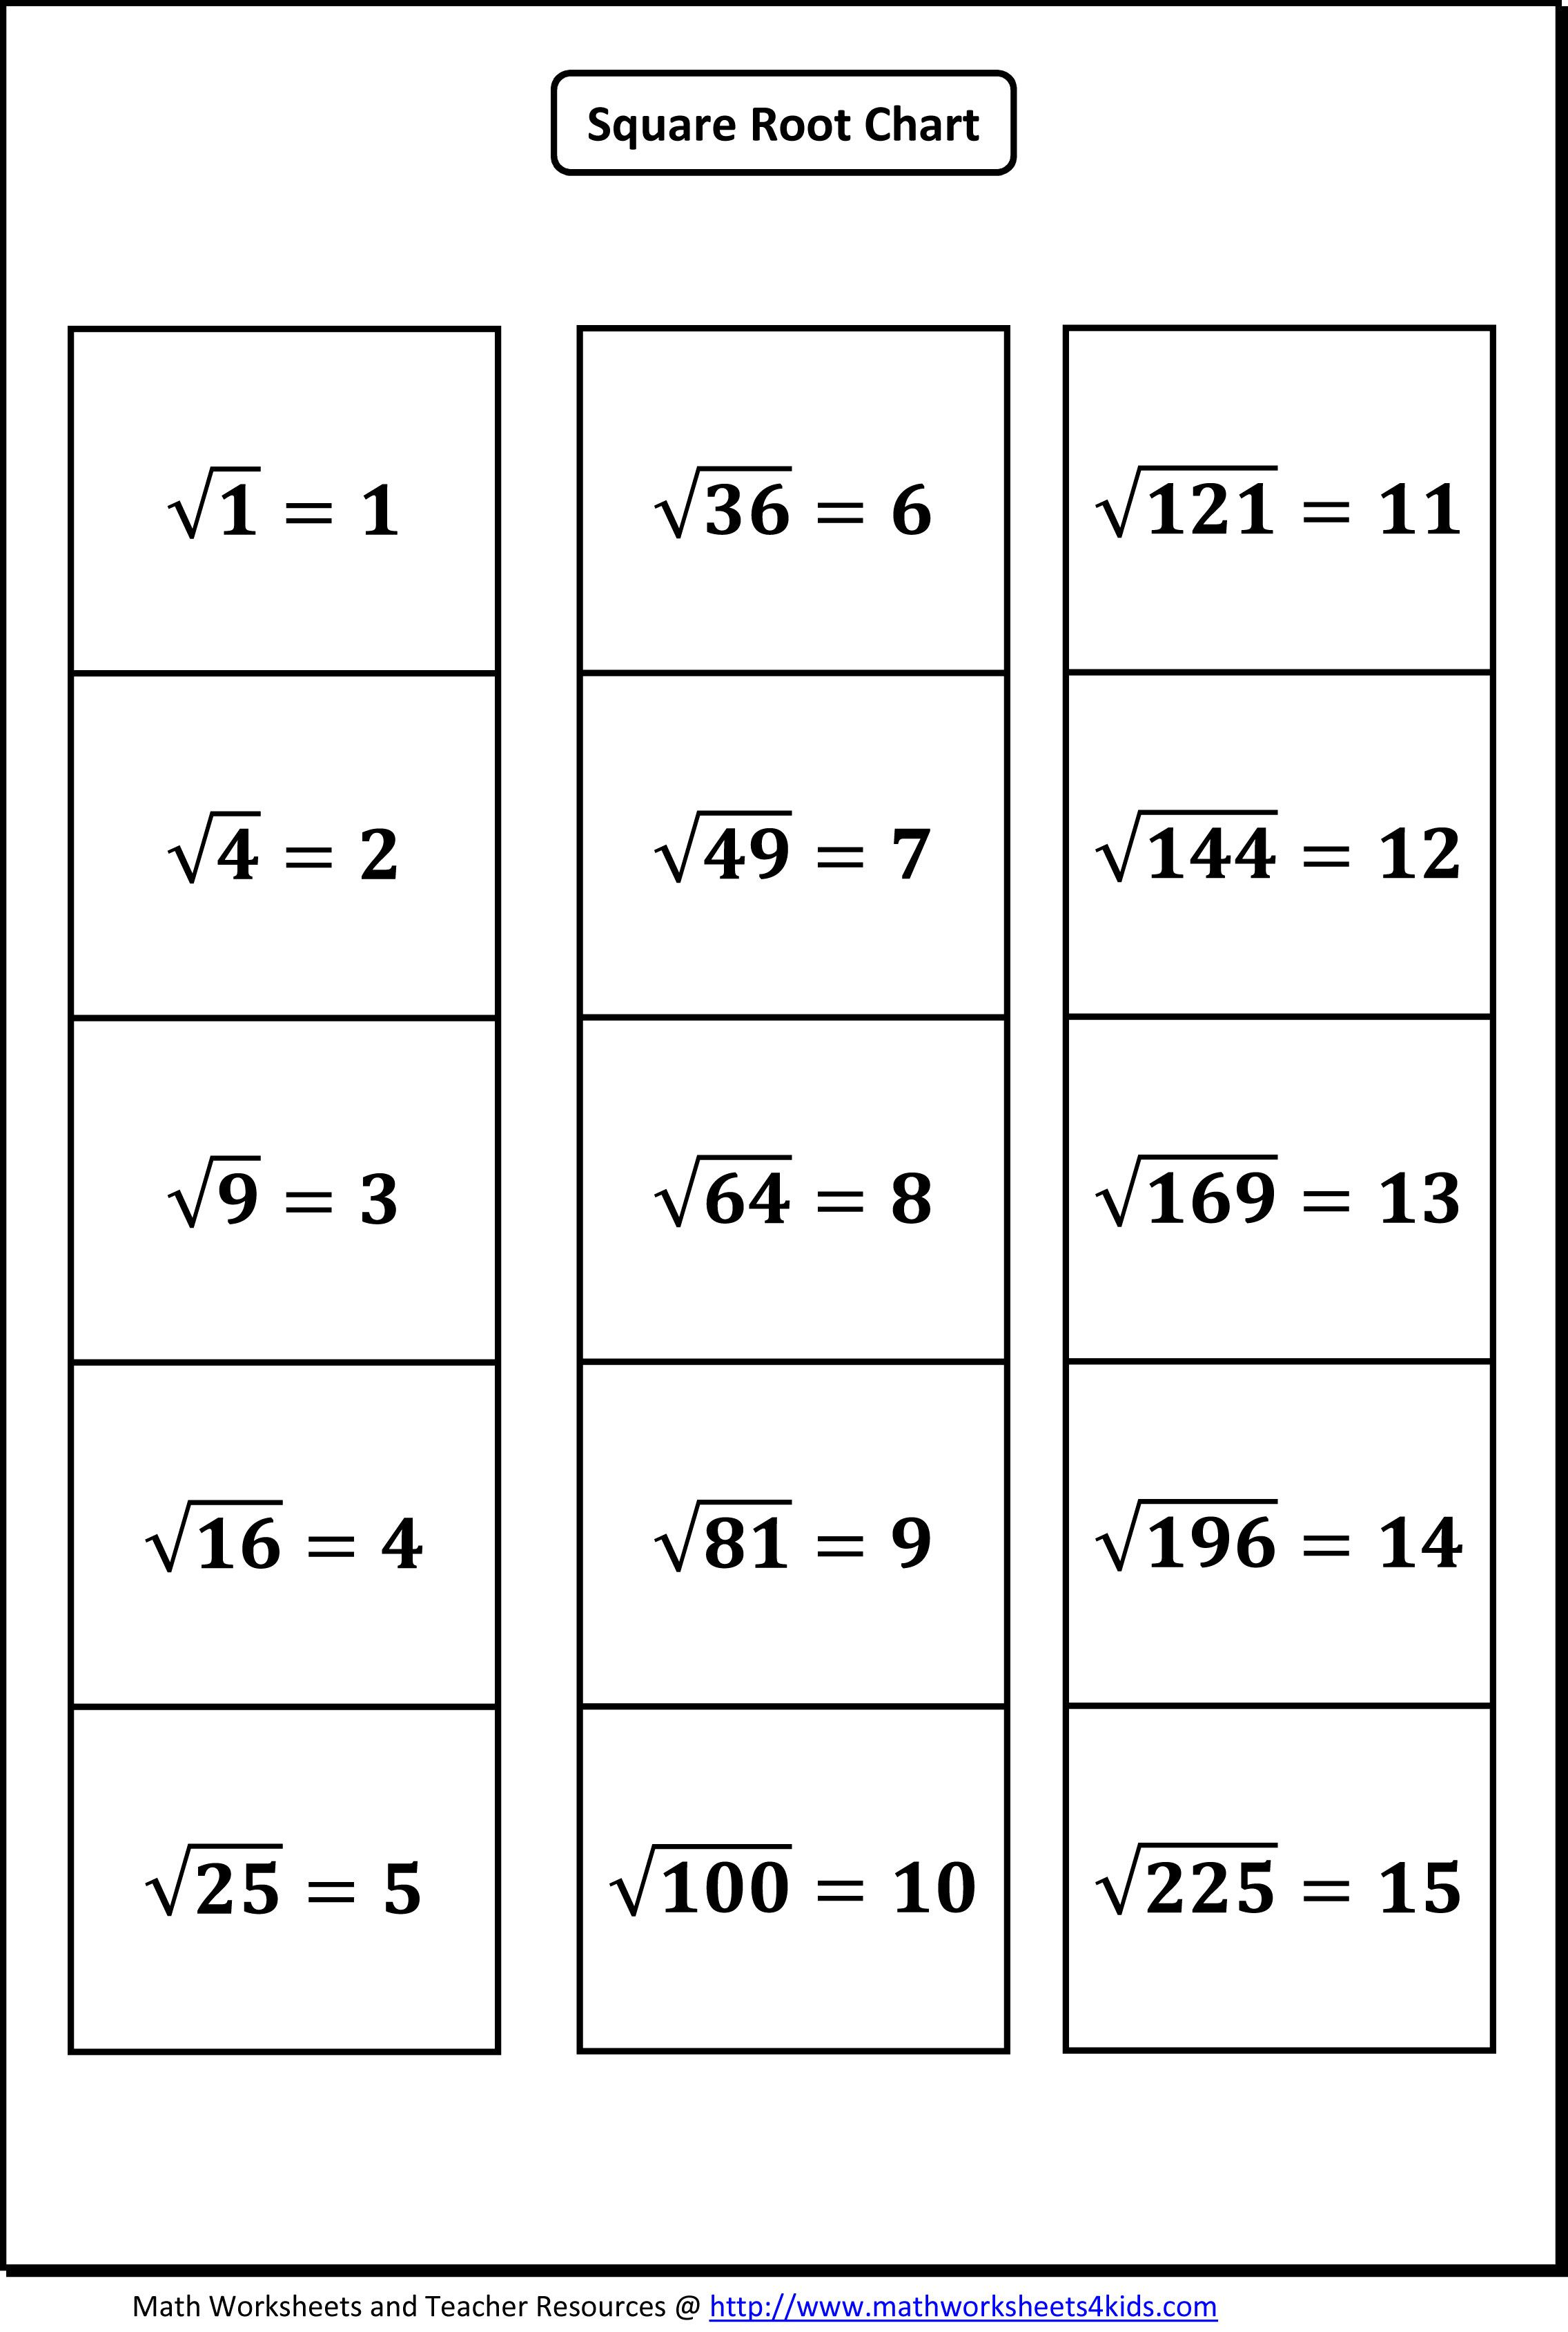 Uncategorized Square Root Worksheets square root worksheets find the of whole numbers fractions and decimals